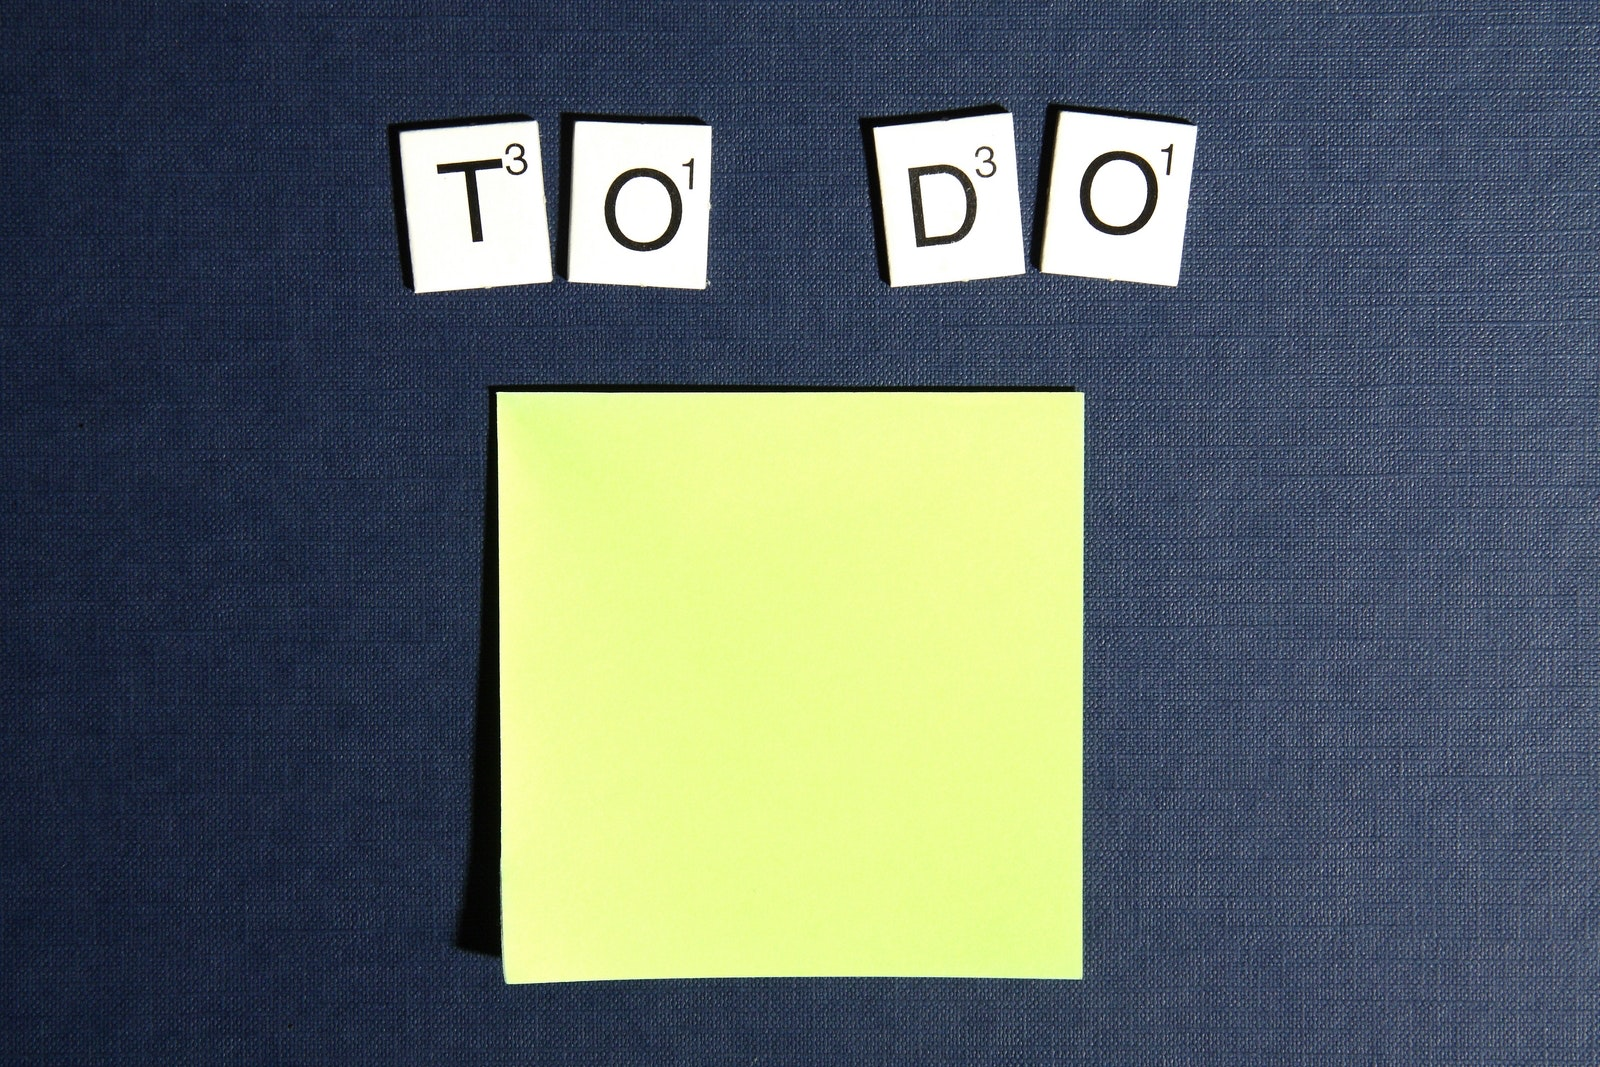 postit-to-do